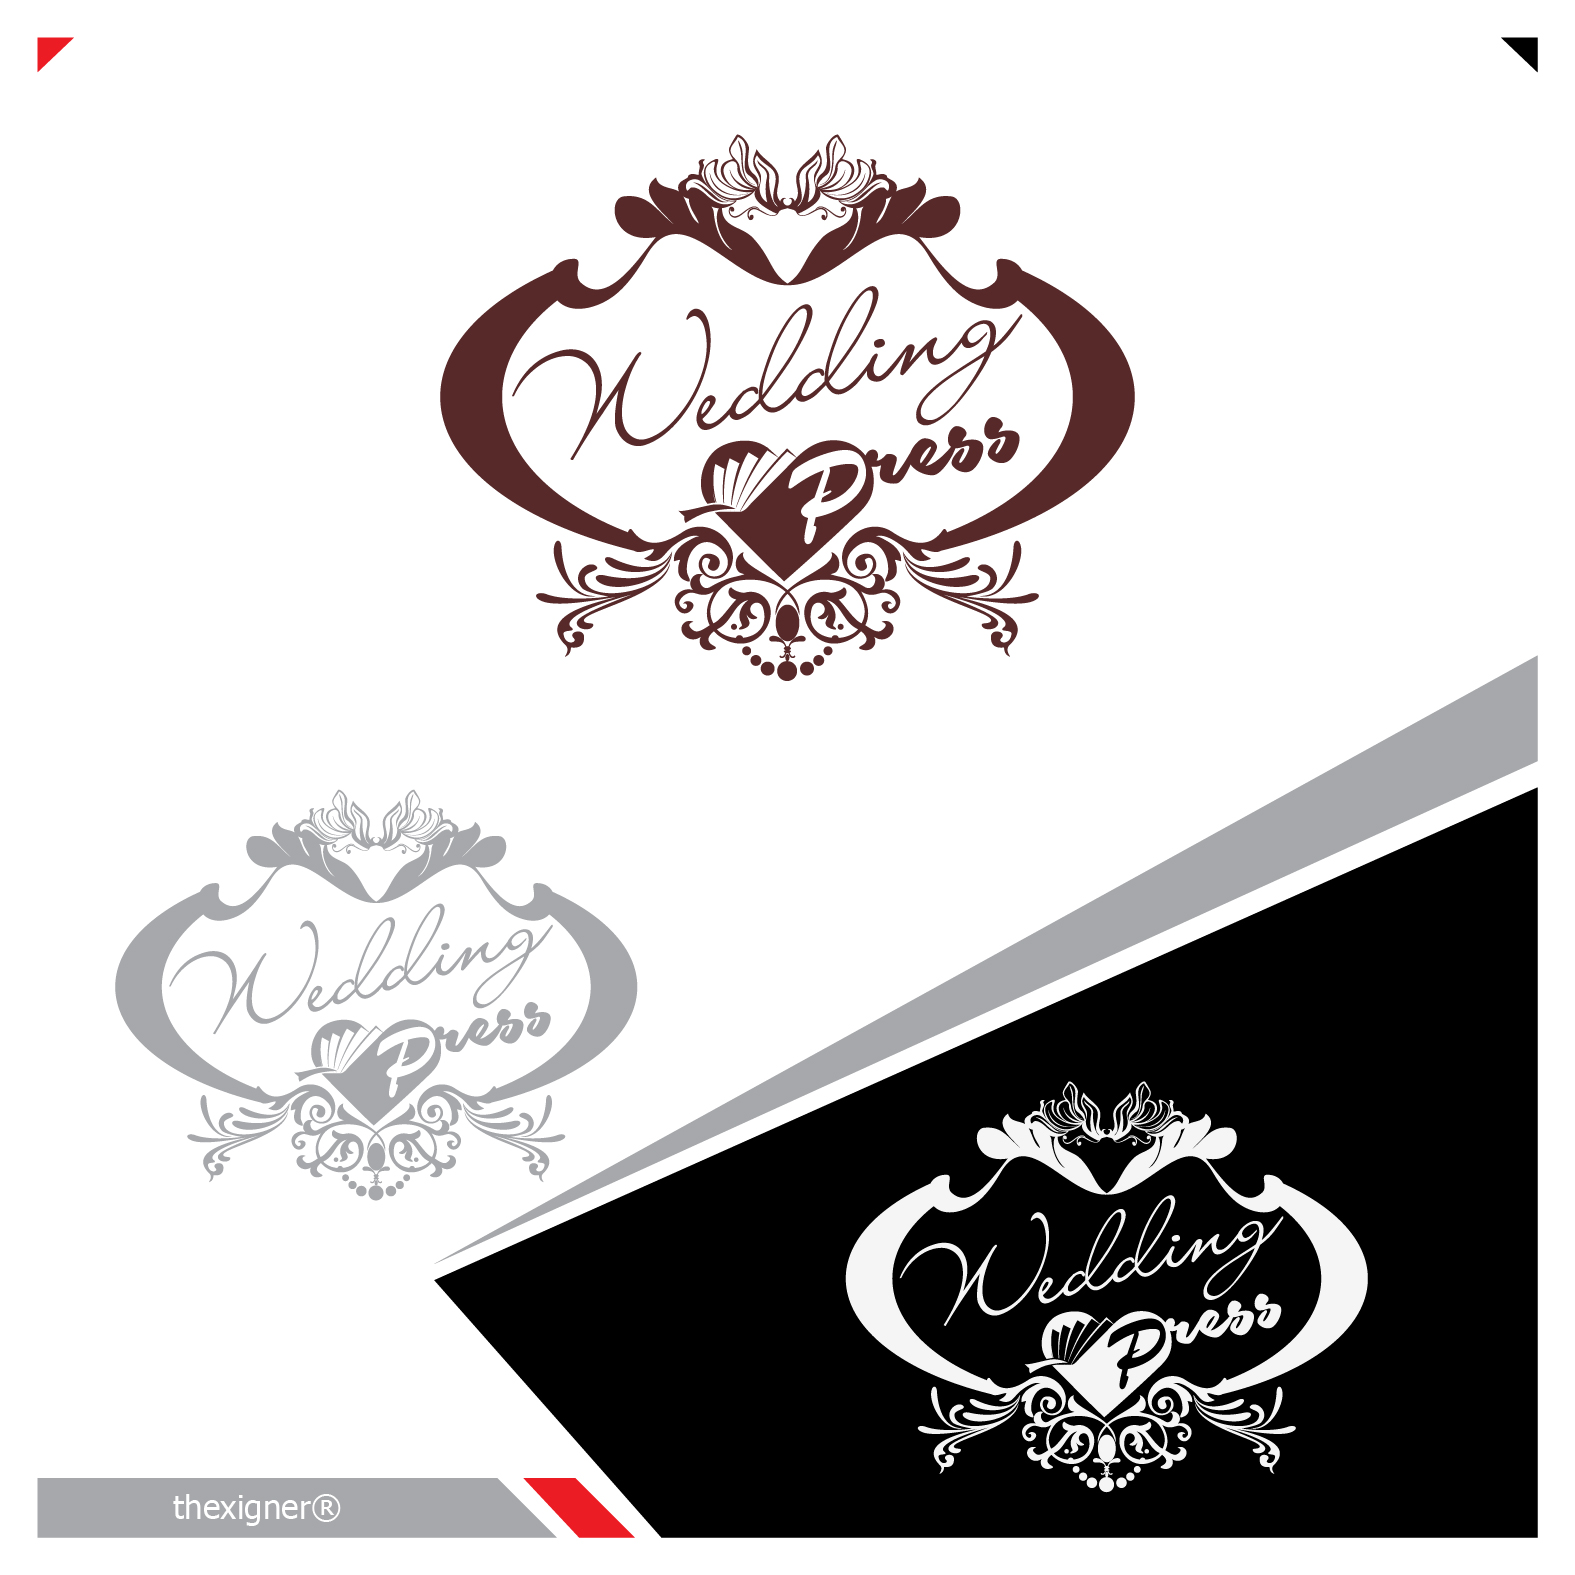 Logo Design by lagalag - Entry No. 89 in the Logo Design Contest Wedding Writes Logo Design.